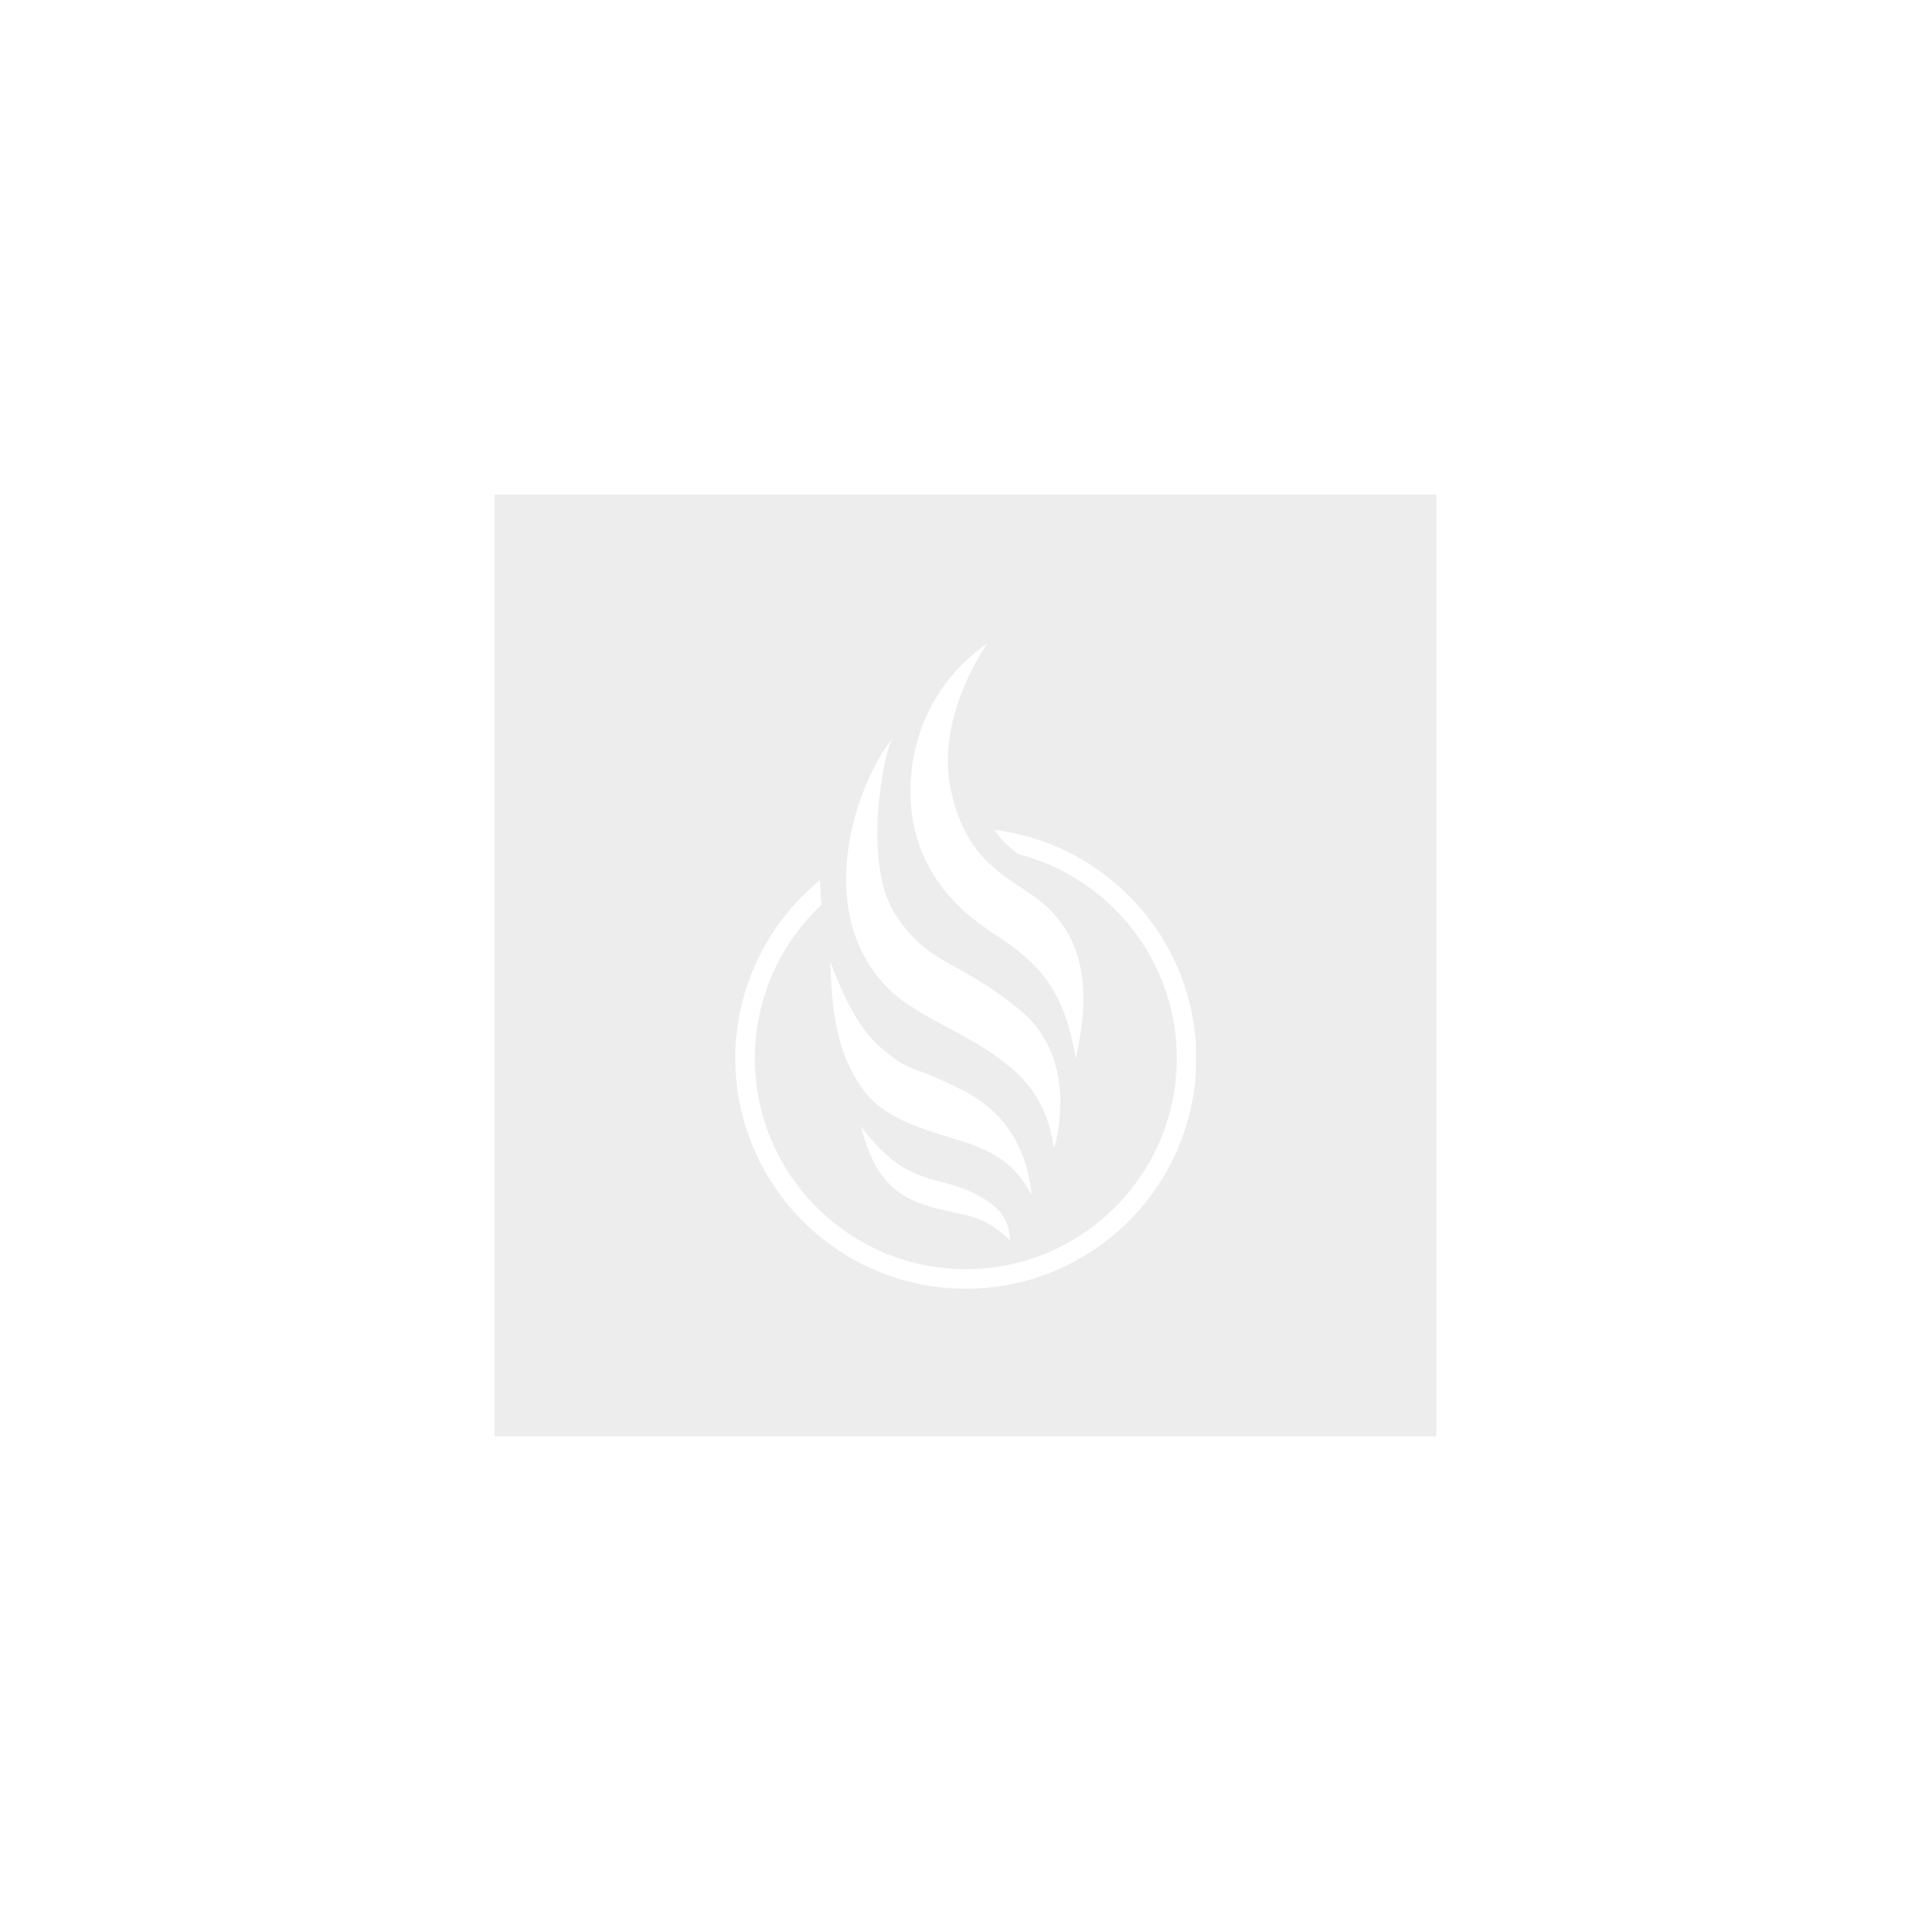 Cool Menthol Shortfill E-Liquid